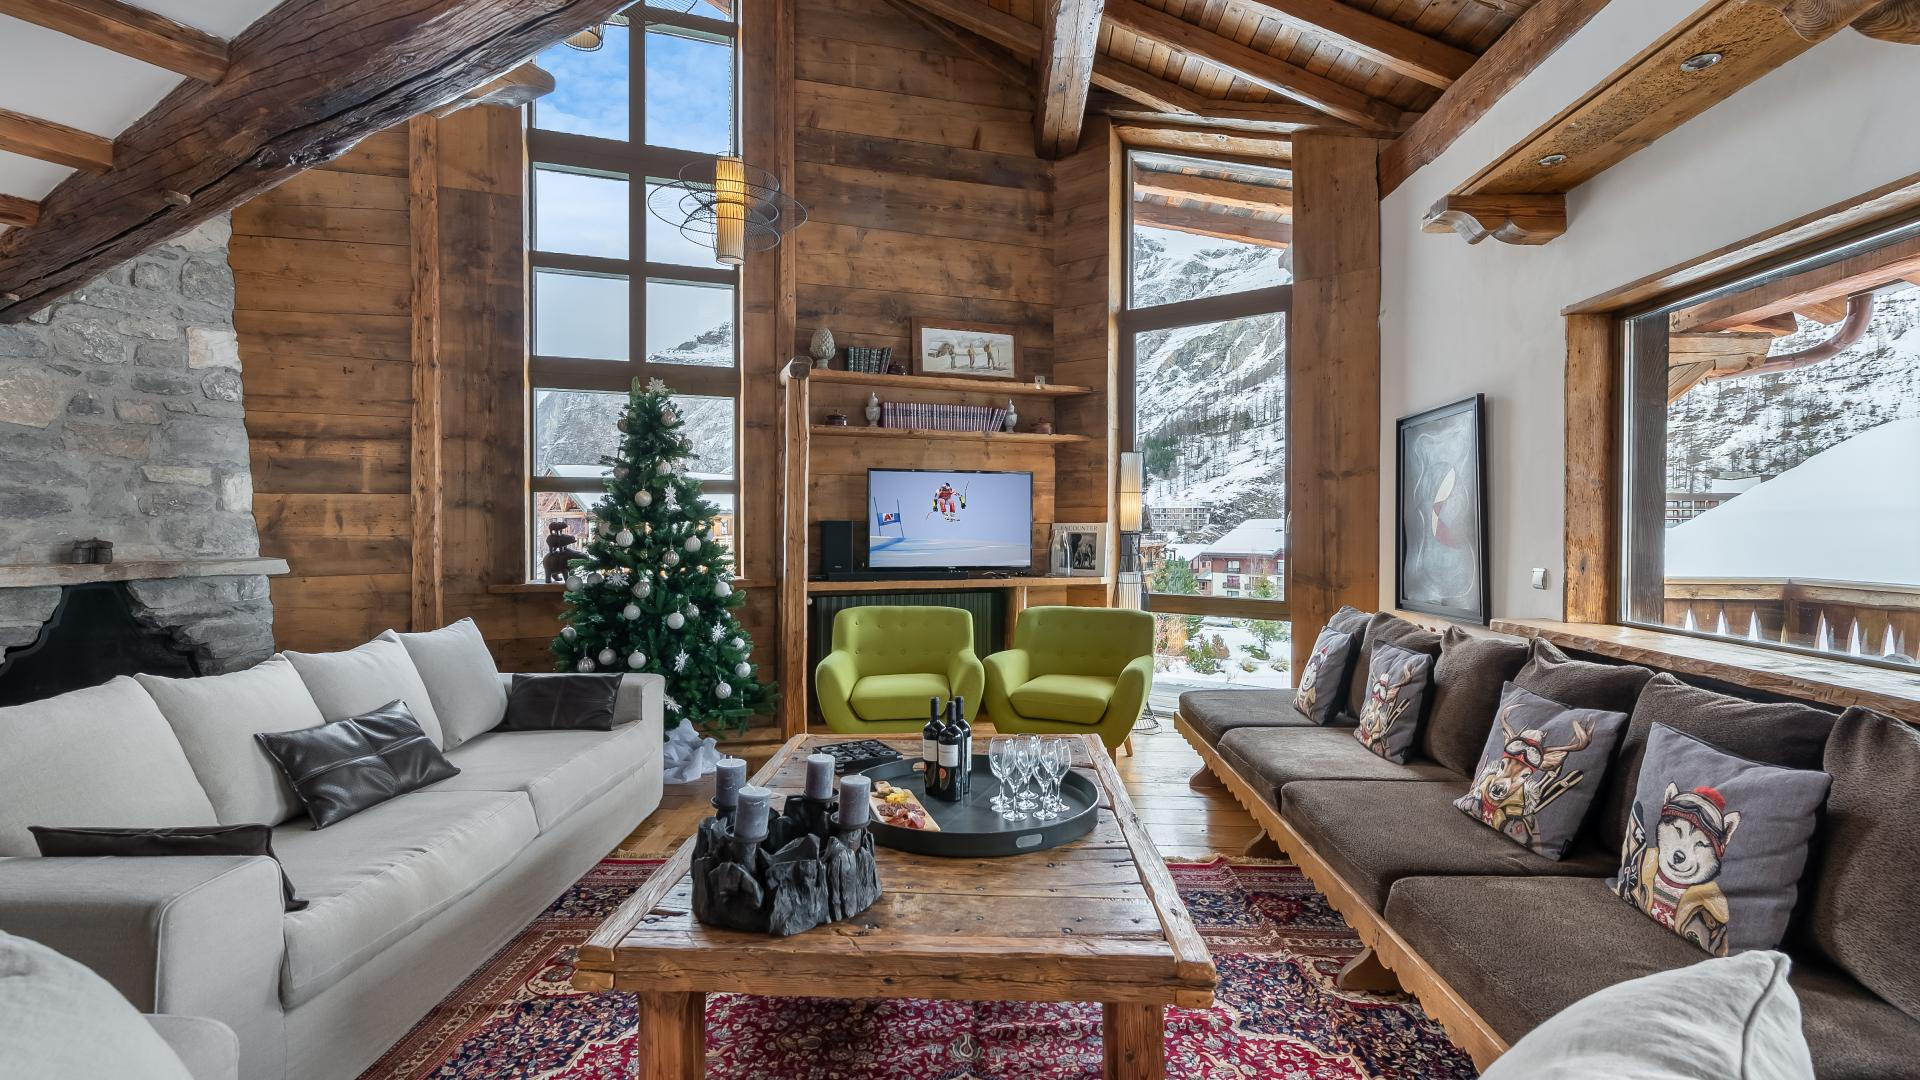 Chalet Pauline - Location chalets Covarel - Val d'Isère Alpes - France - Salon